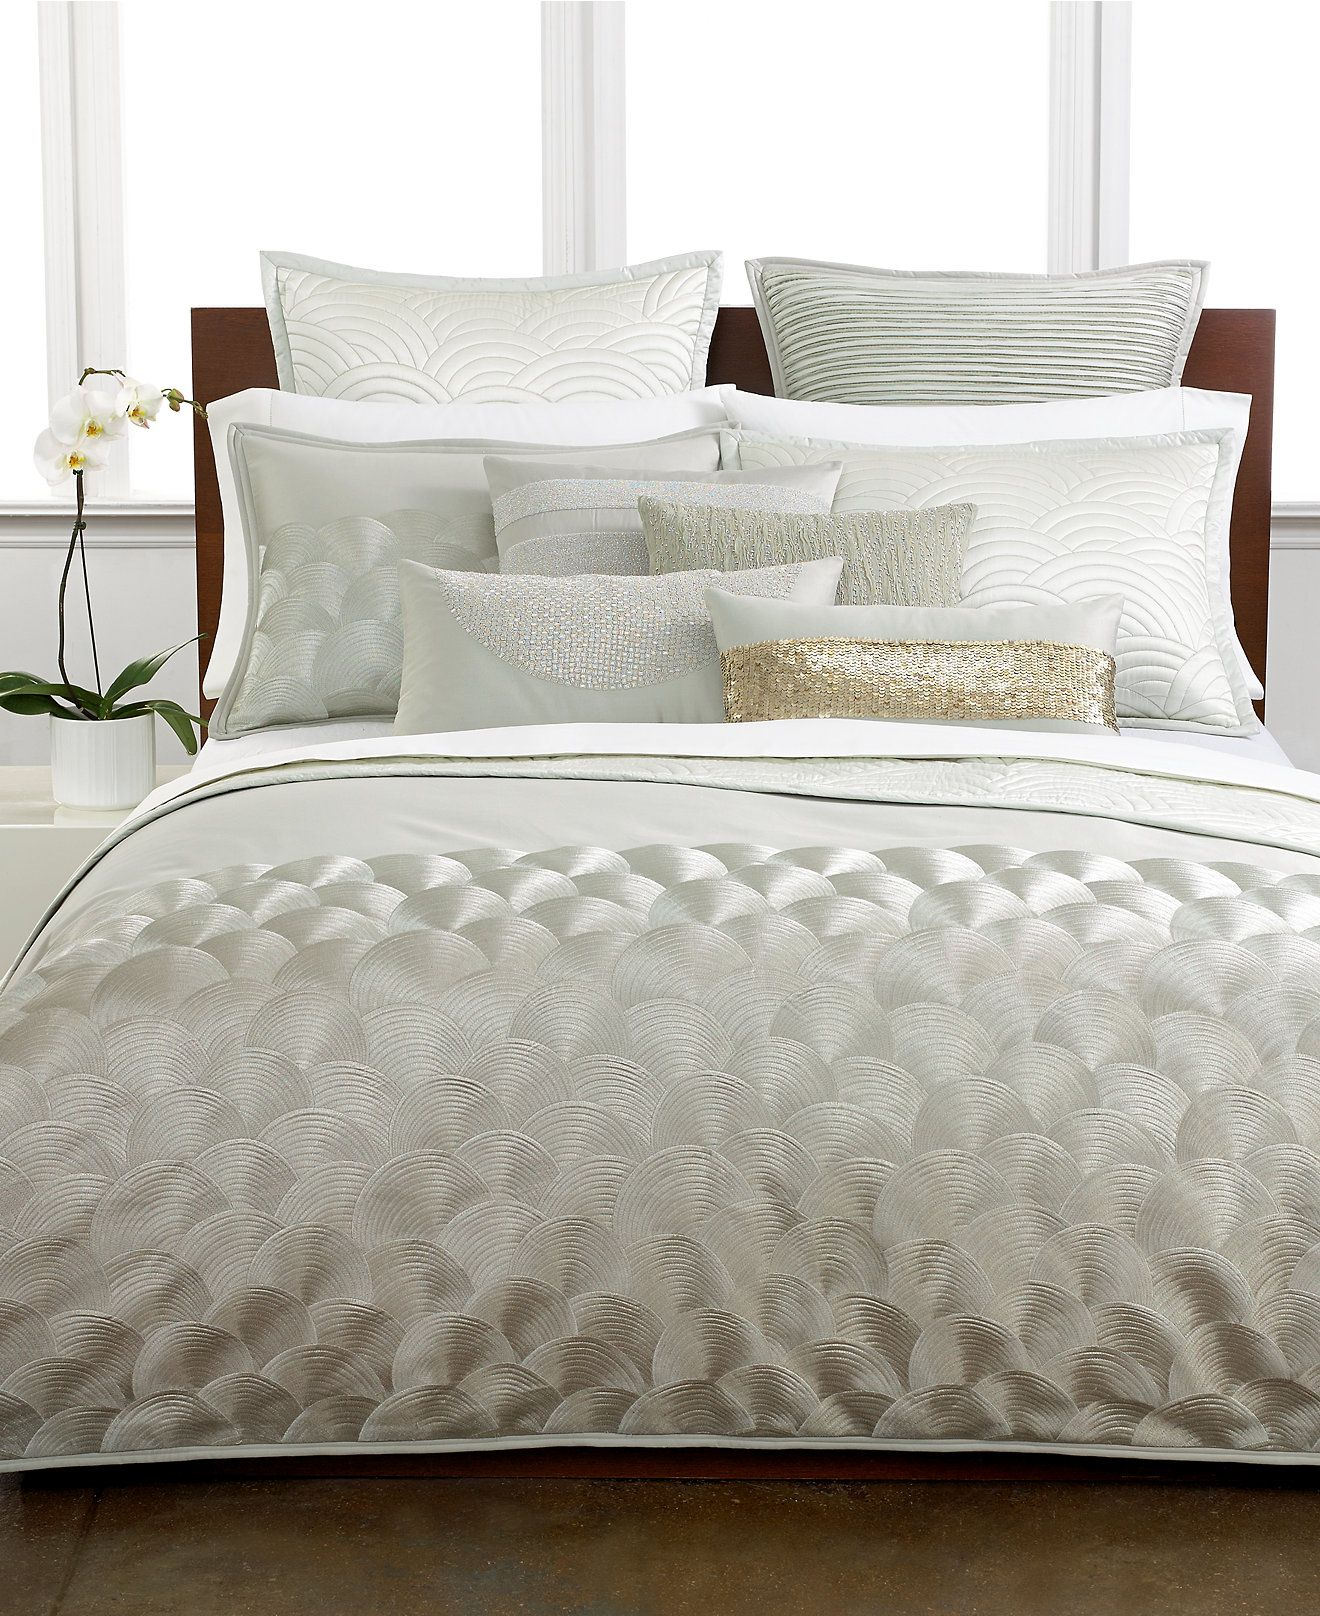 Hotel Collection Finest Seafan Collection Sale Bedding